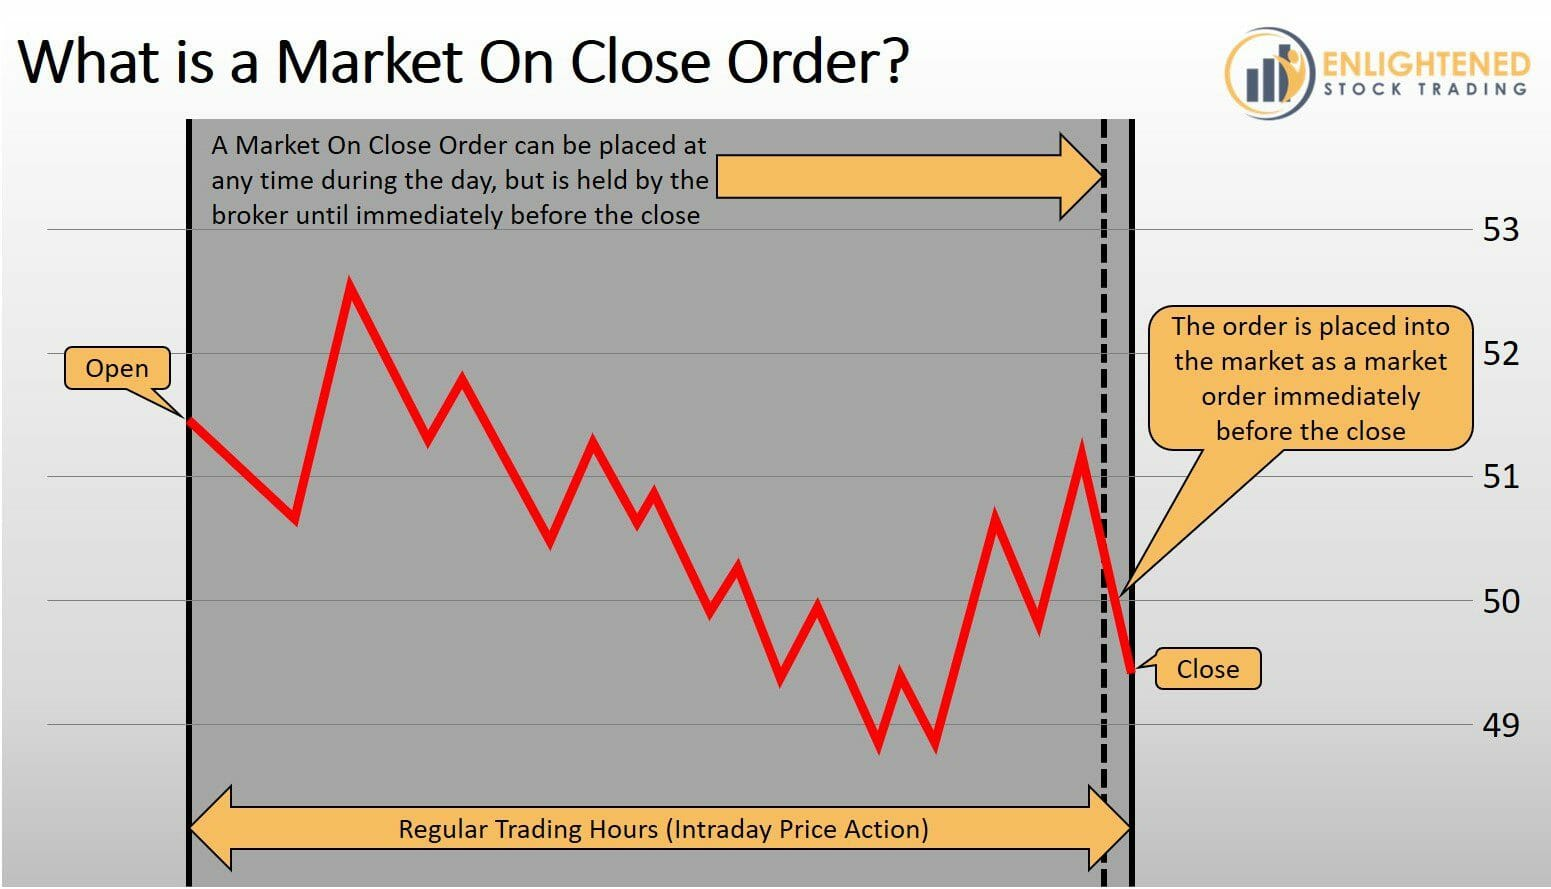 Stock Trading Order Types - What is a Market On Close Order Type - MOC